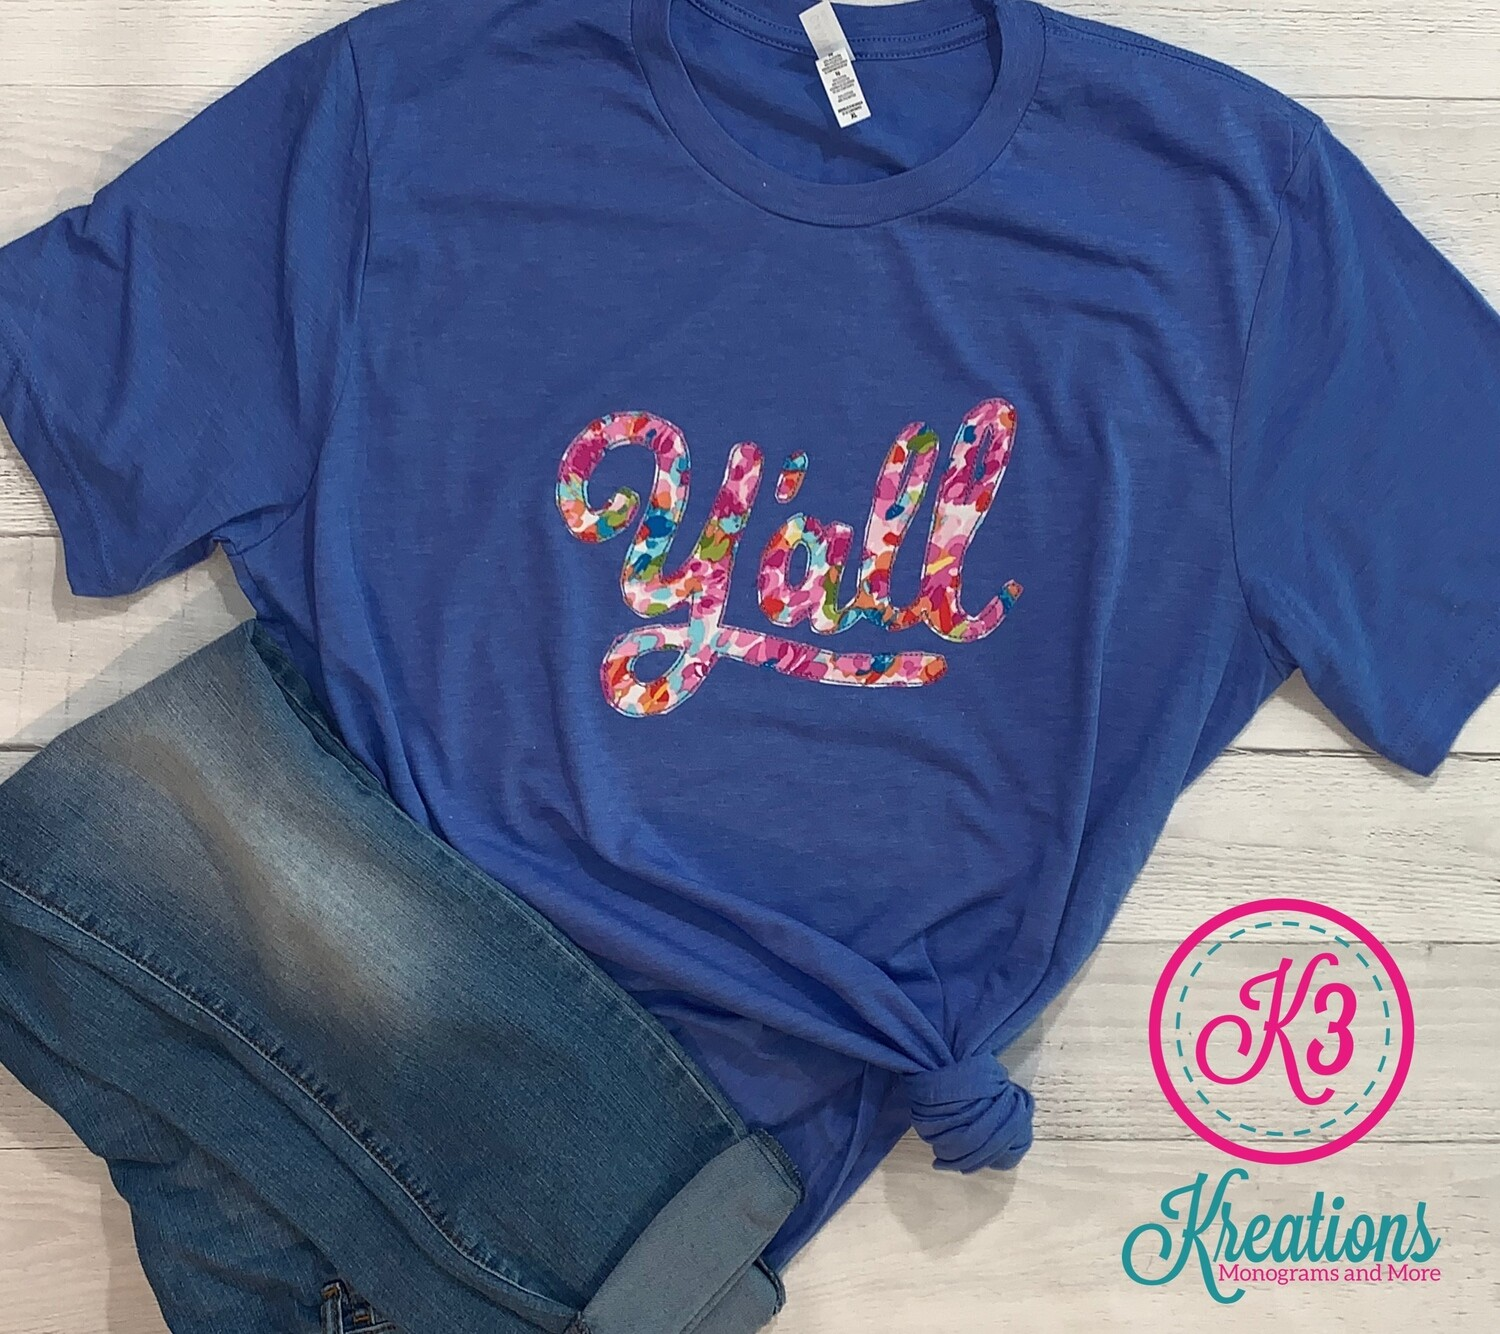 Y'all Tri-Blend Short Sleeve T-shirt - Pink Multi